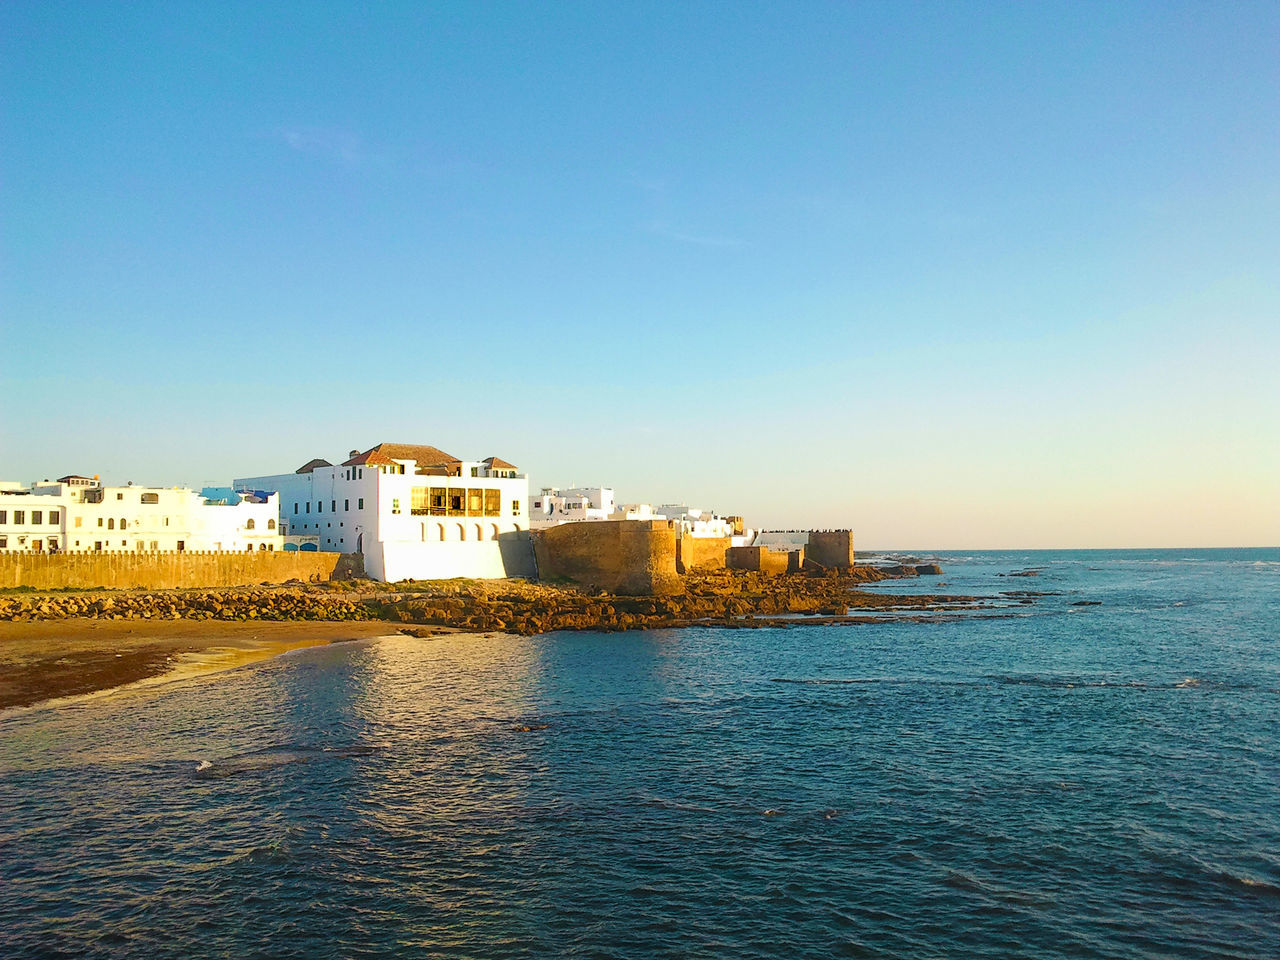 asilah sea Architecture Asilah Asilah Morocco Beauty In Nature Blue Building Exterior Built Structure Clear Sky Day Nature No People Outdoors Scenics Sea Sky Sky And City Sky And Sea Water Waterfront